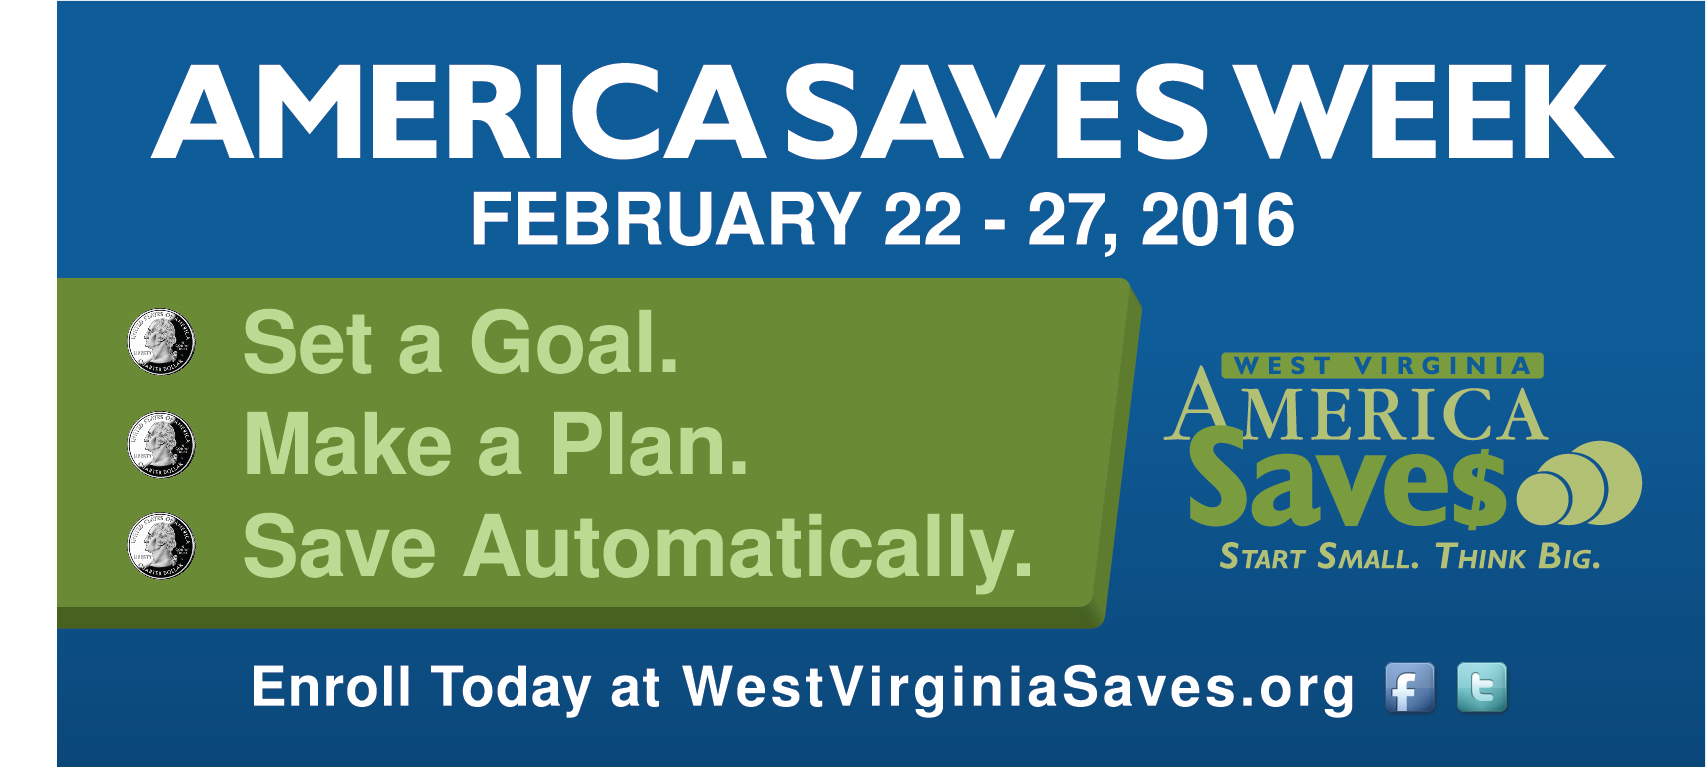 WVSaves_ASW2016-WEB